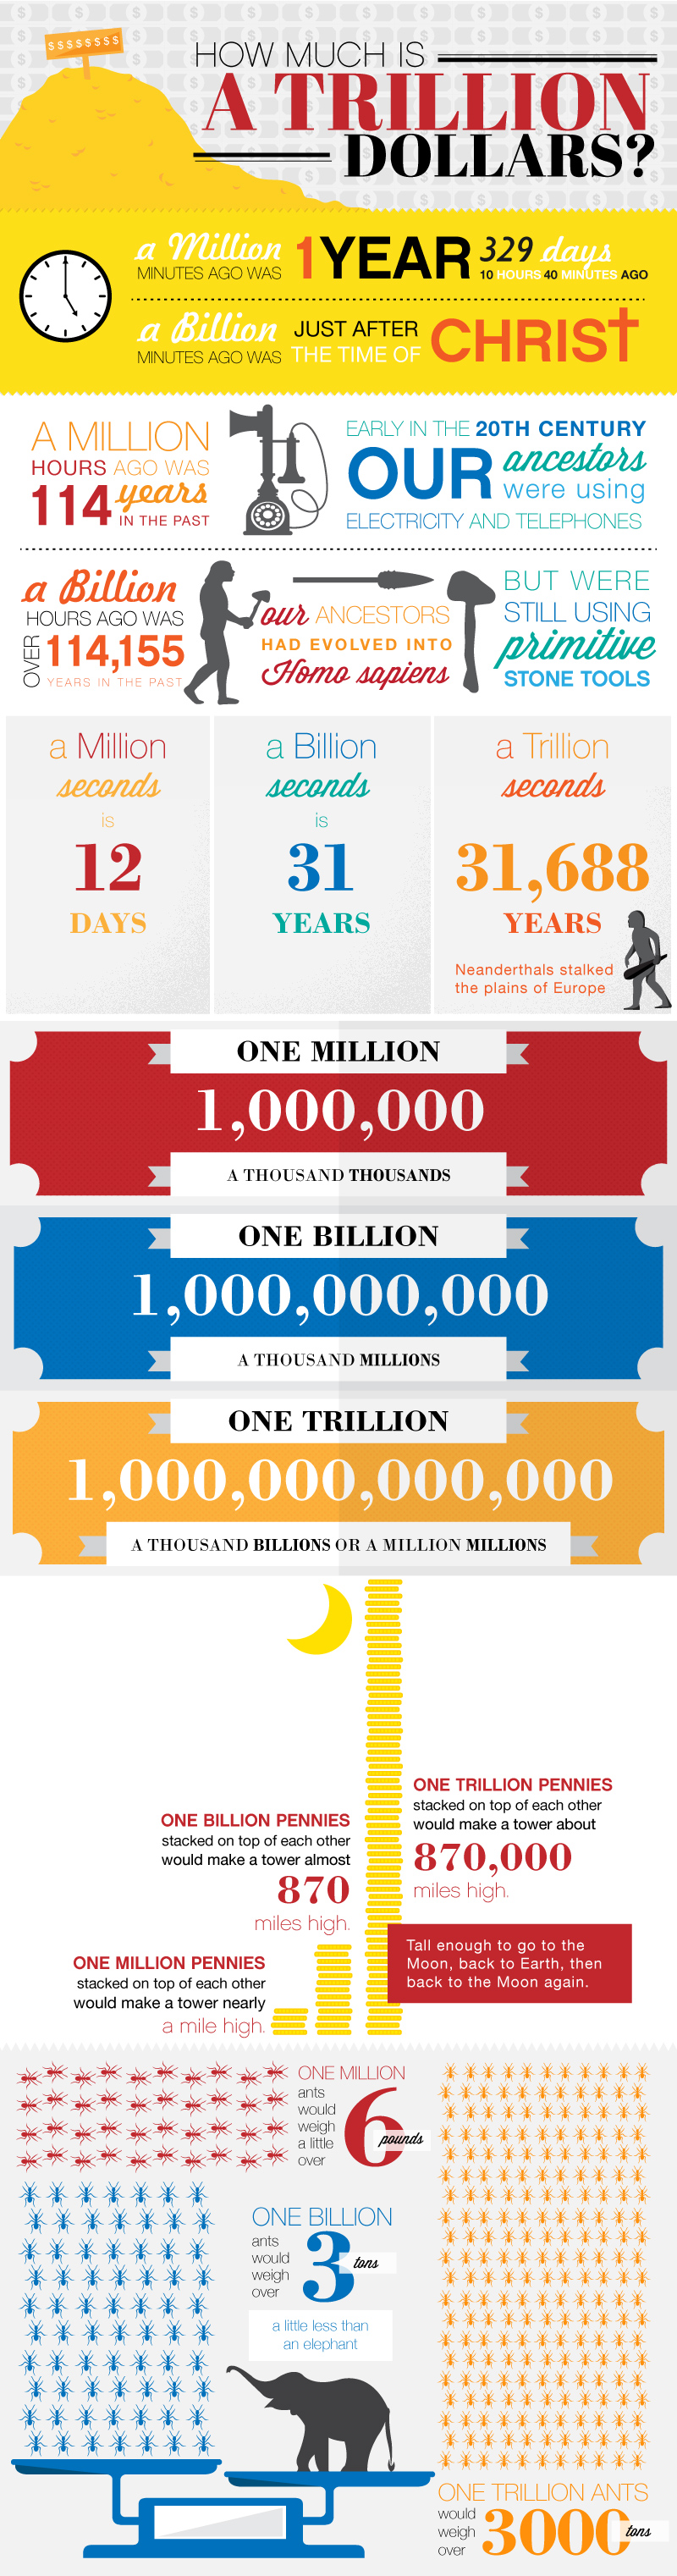 1 billion equals how many millions